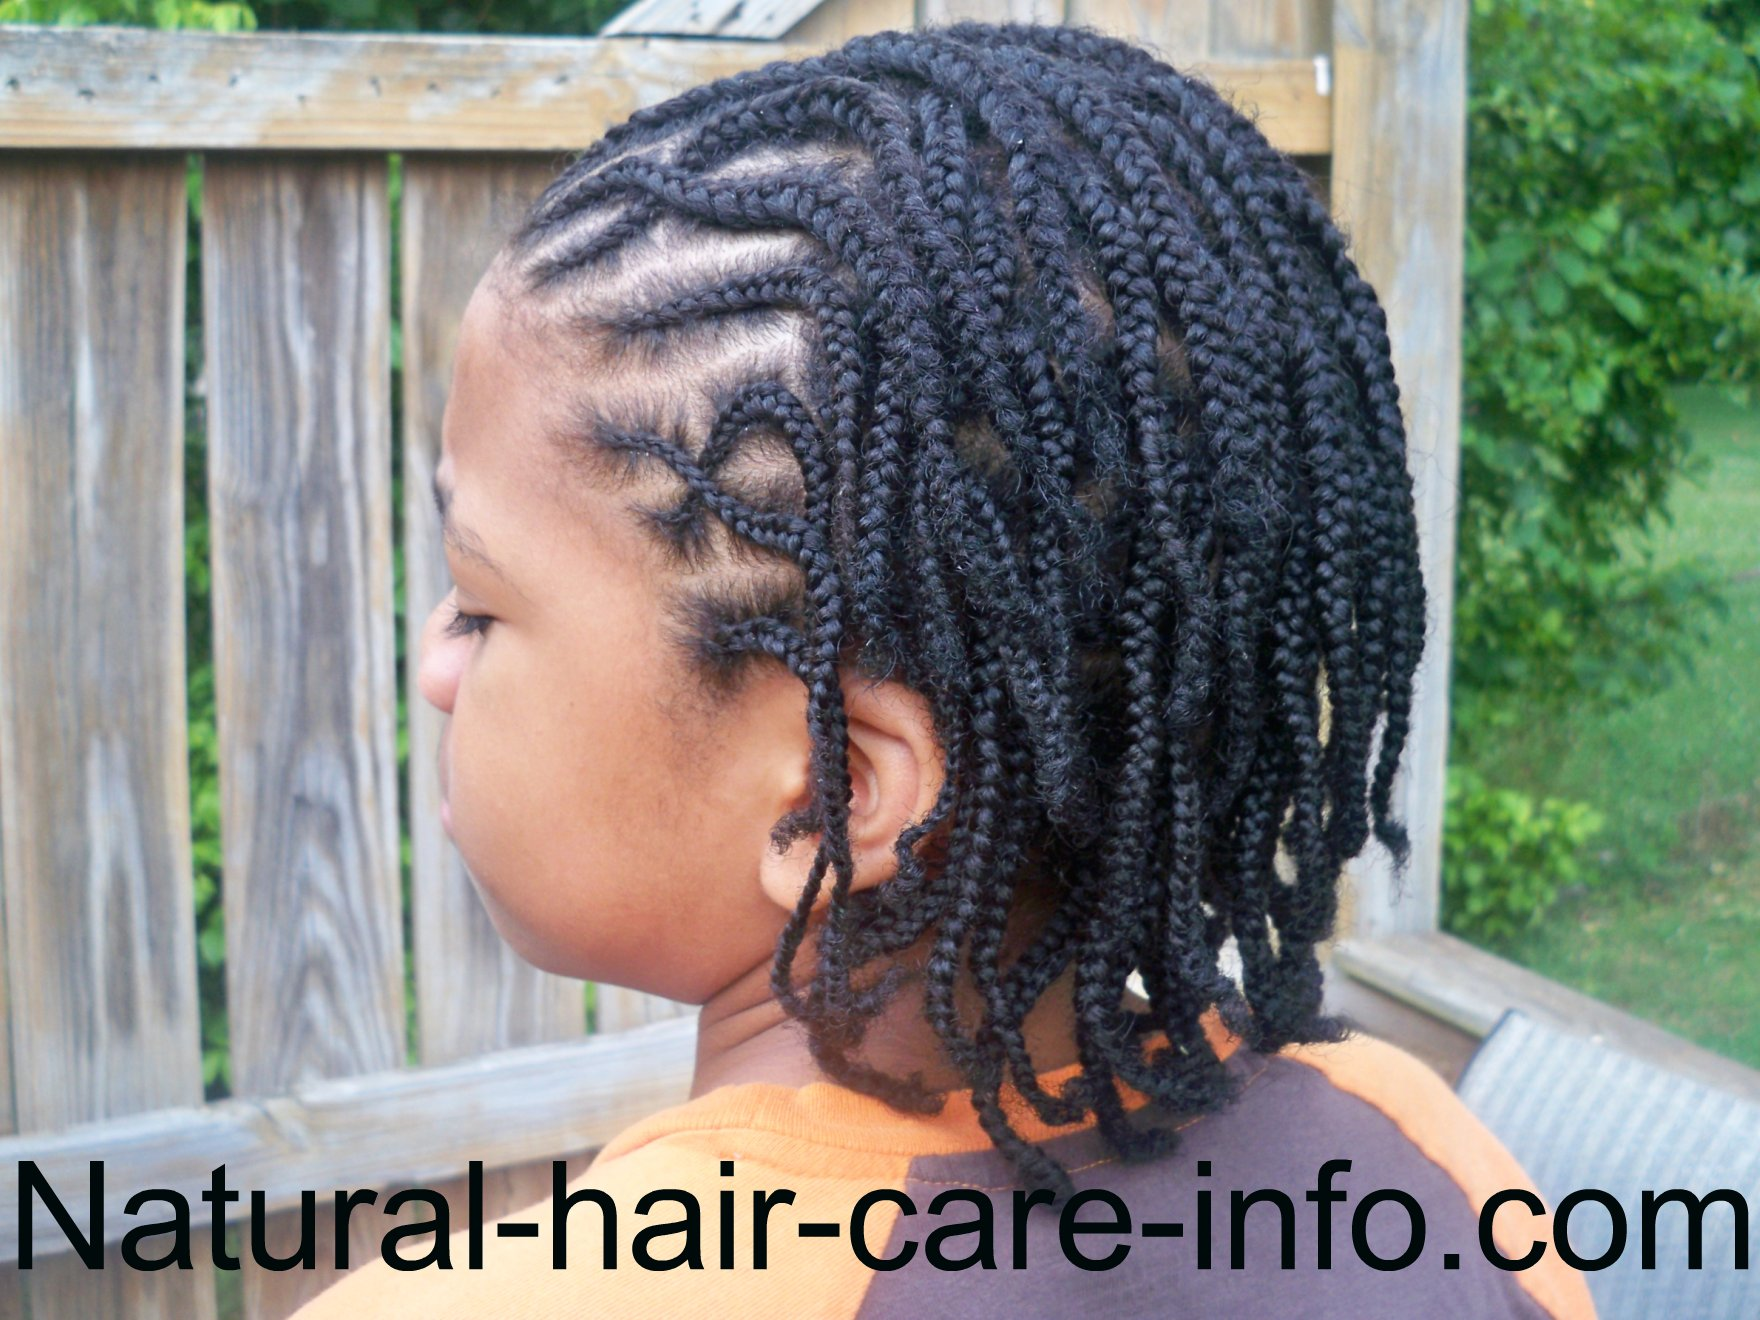 Pleasant Braid Hairstyles For Men Complete List And Tutorials Hairstyles For Men Maxibearus